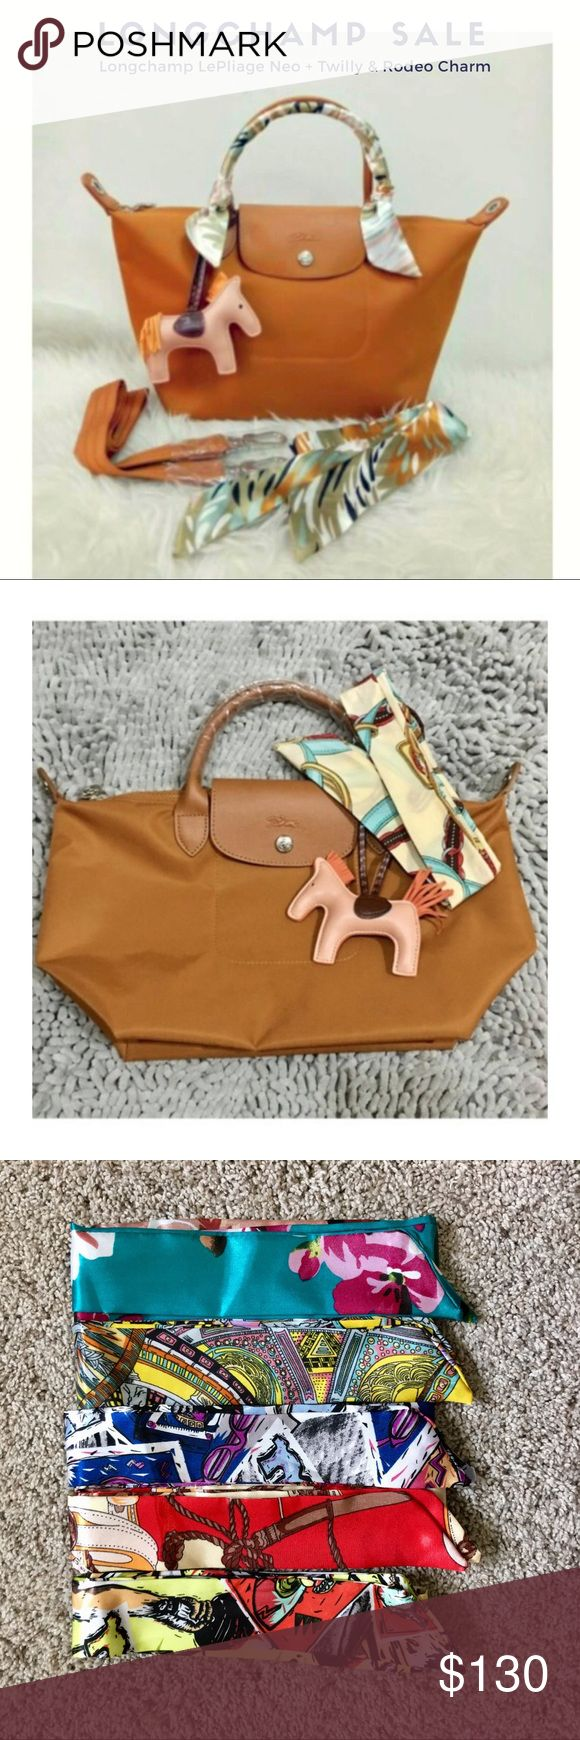 Longchamp Le Pliage NEO Caramel- SML Short Handle SALE!! SALE!!  Longchamp NEO with Twilly and Rodeo Bag Charm  Authentic Longchamp Neo Caramel ( sml short handle) 100% Silk Twilly Rodeo Bag Charm Longchamp Bags Totes